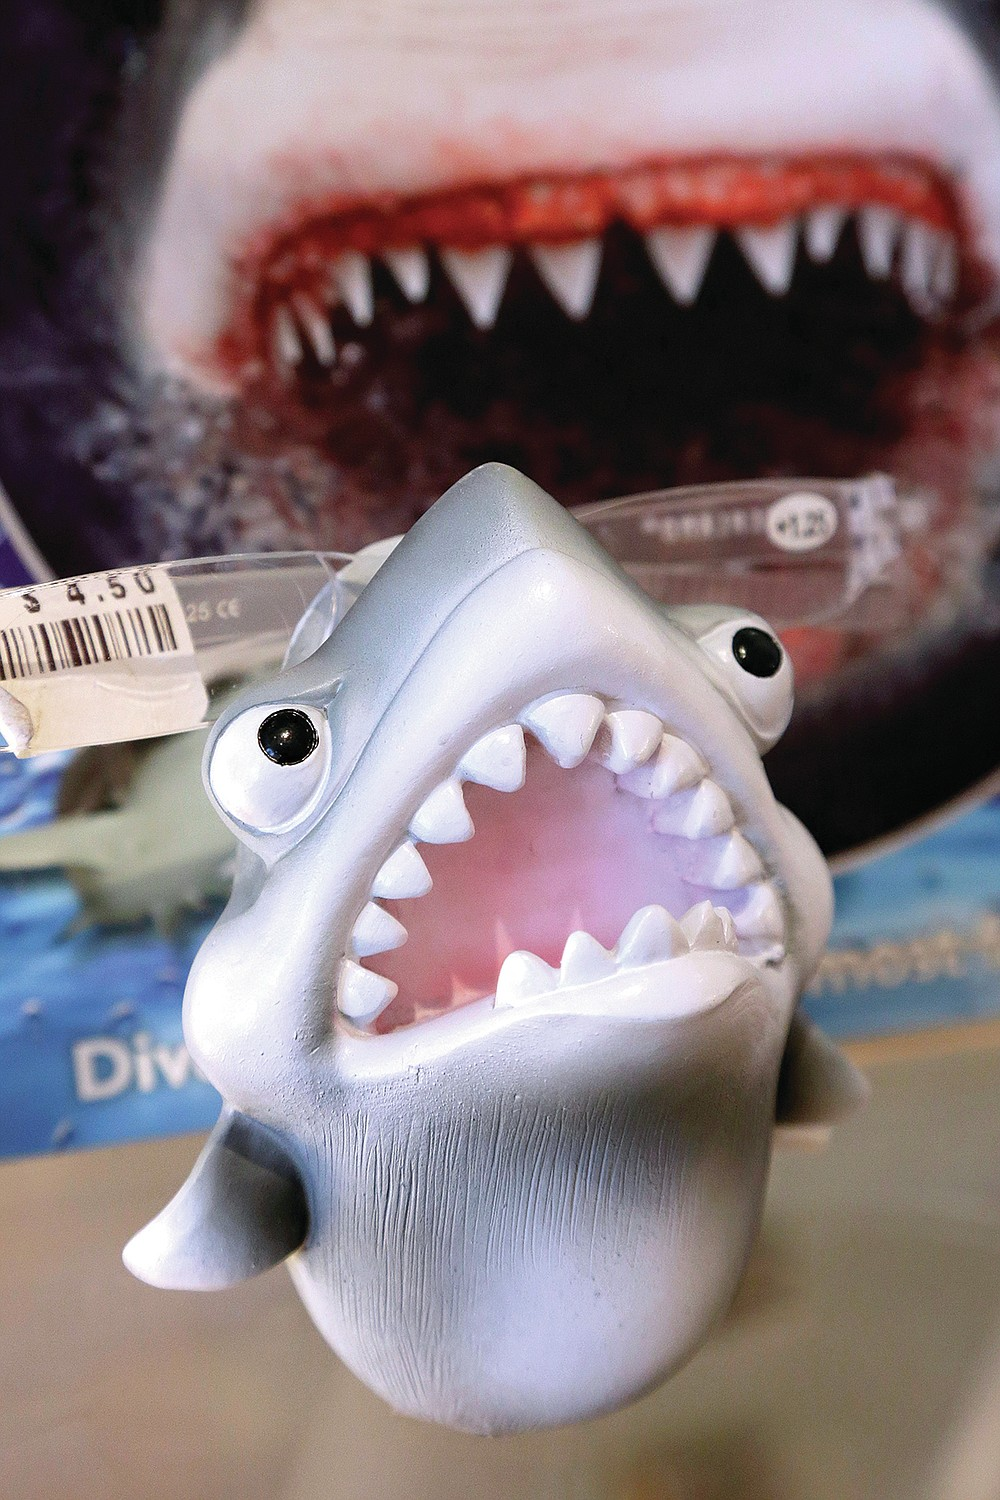 FILE— In this July 2, 2014 file photo, an eye glass holder in the shape of a shark rests on a shelf in a souvenir shop in Chatham, Mass. Cape Cod is slowly embracing its shark reputation, three summers after the popular vacation destination saw its first great white shark attacks in generations. A growing group businesses are cashing in on the shark trend with retail offerings to tourists and charter boat operators giving visitors a chance to see the marine predators up close. (AP Photo/Steven Senne, File)